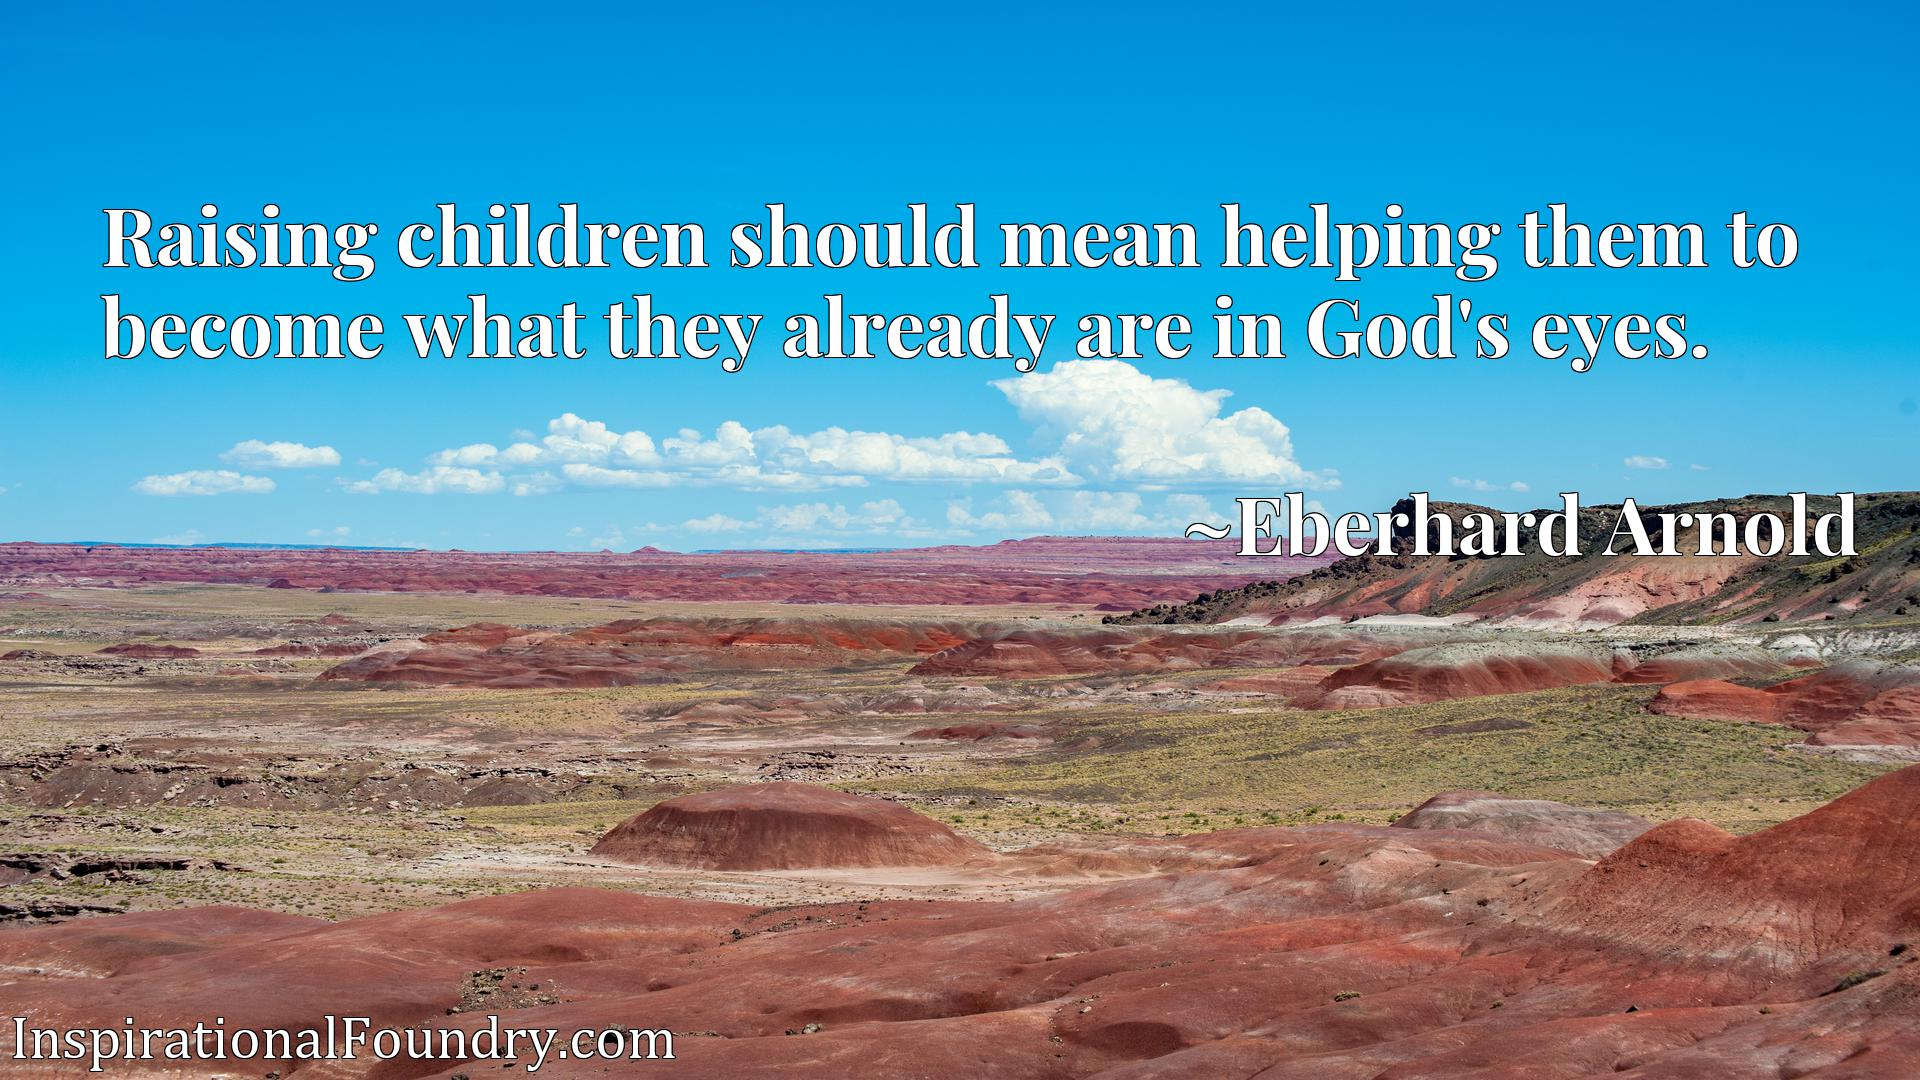 Raising children should mean helping them to become what they already are in God's eyes.